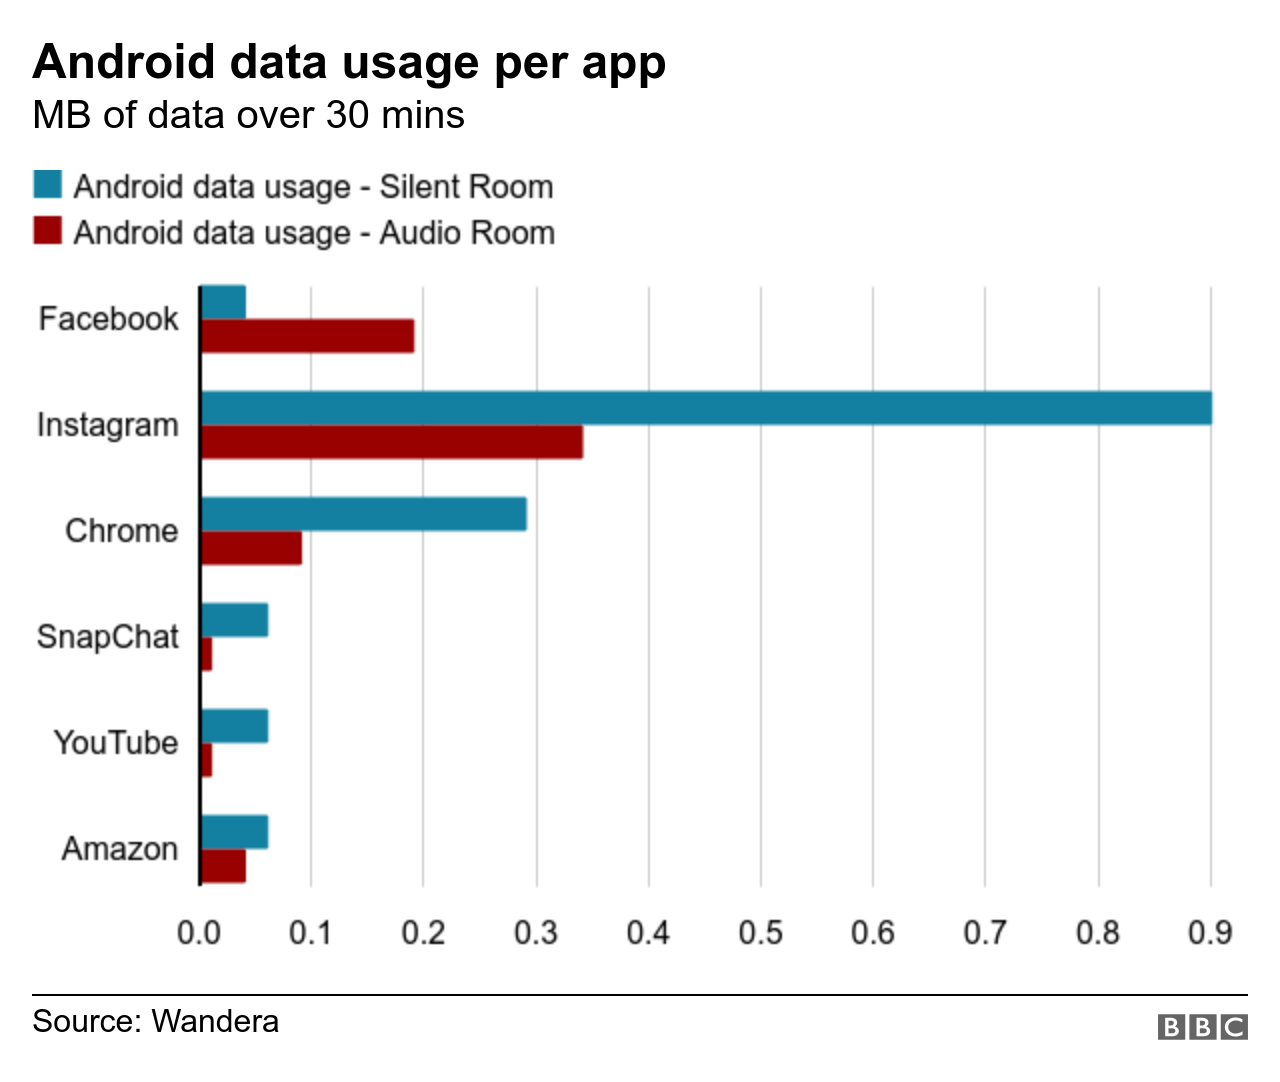 Android data usage per app